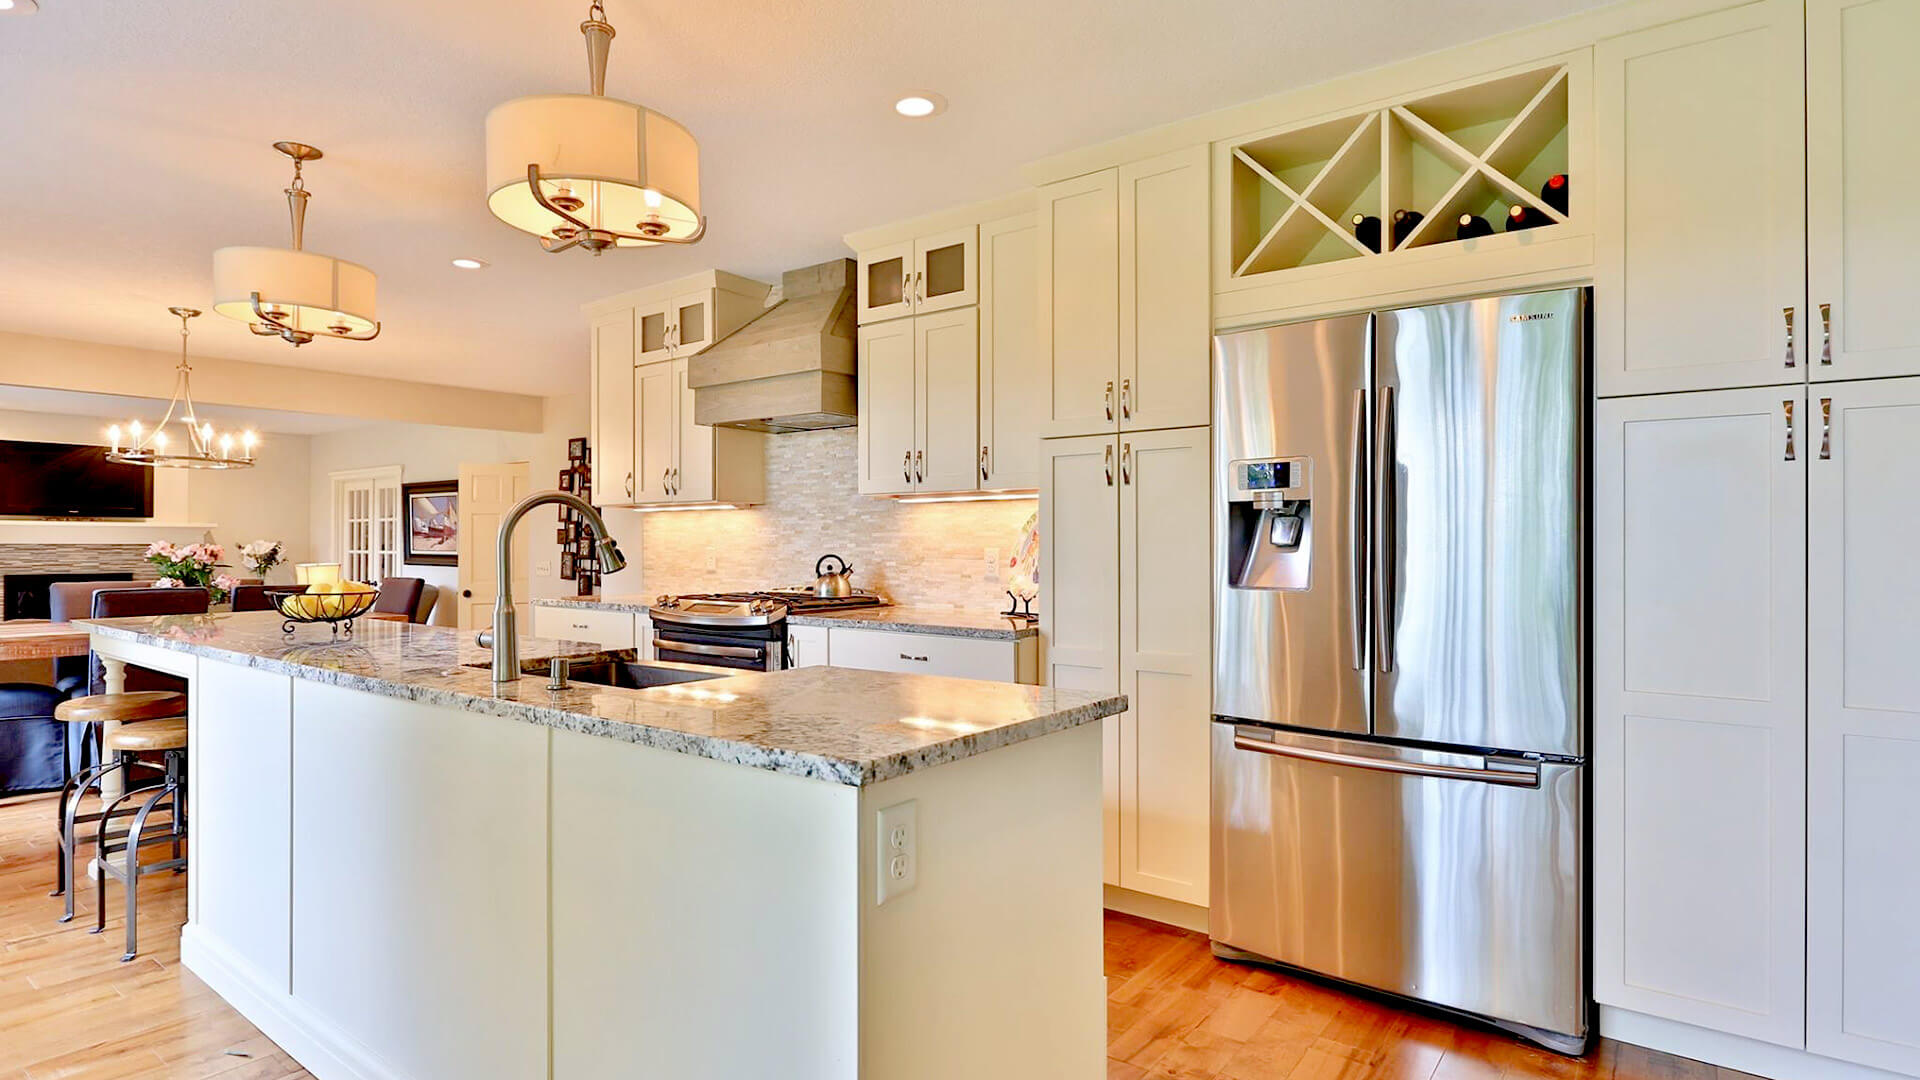 Twin Cities home kitchen remodel and main level remodel built by Red Pine Builders